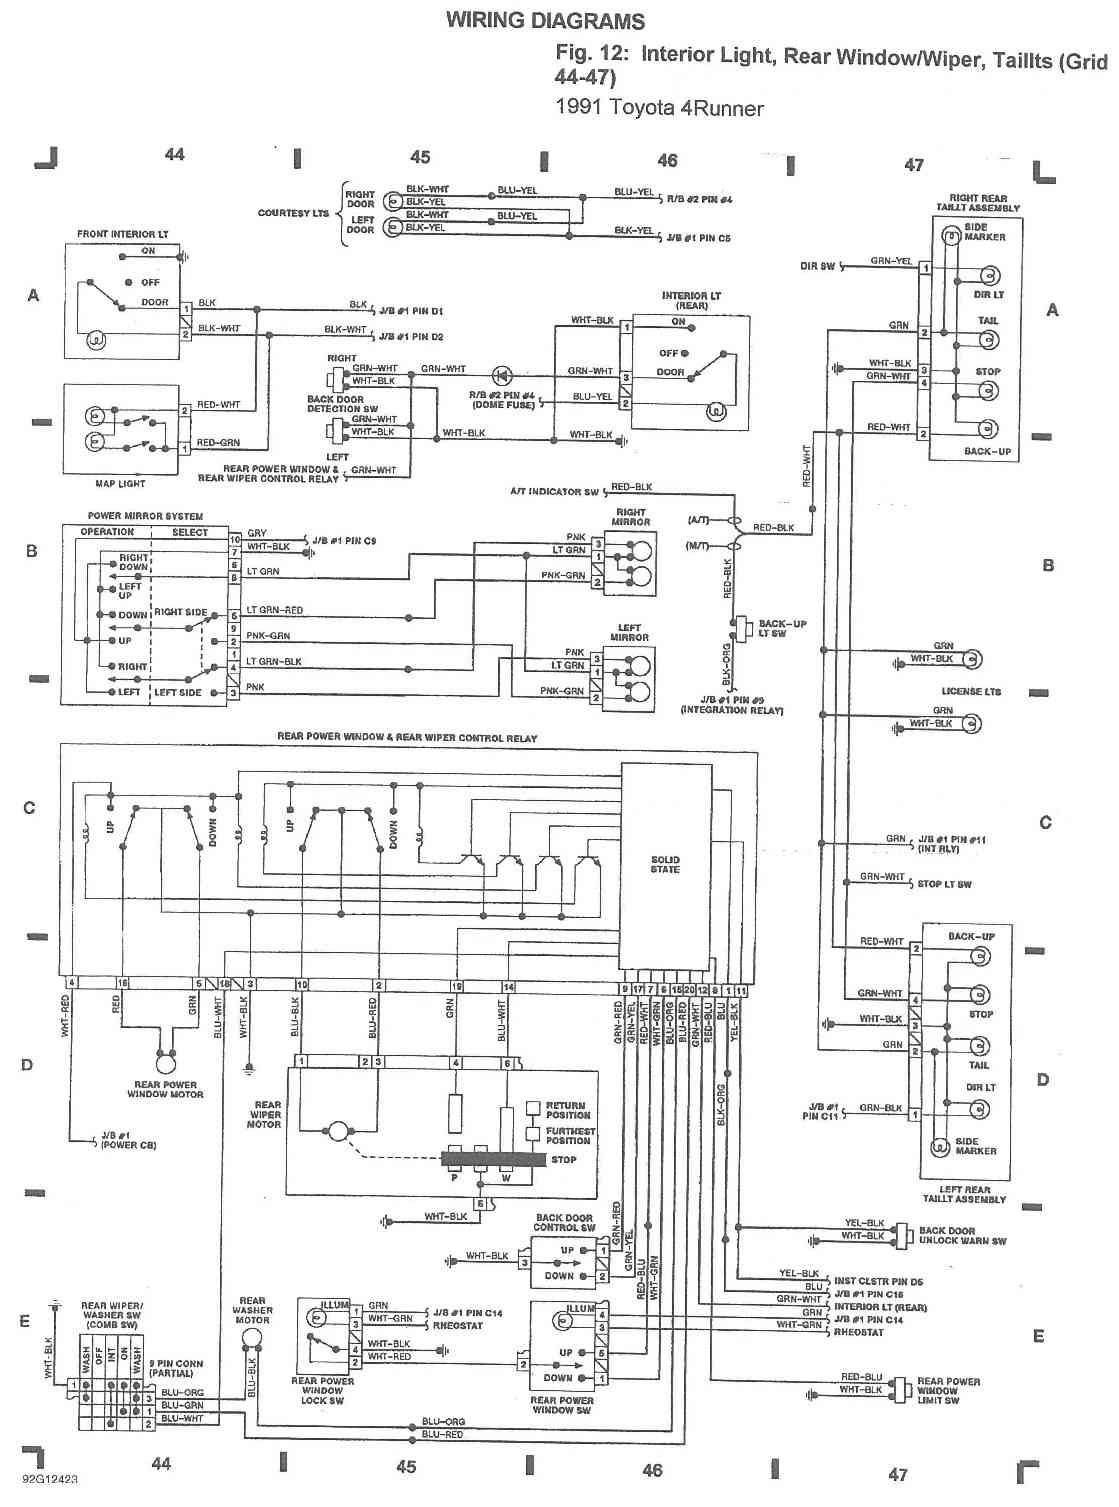 hight resolution of 92 4runner tail light wiring diagram wiring diagram name 92 4runner fuse diagram